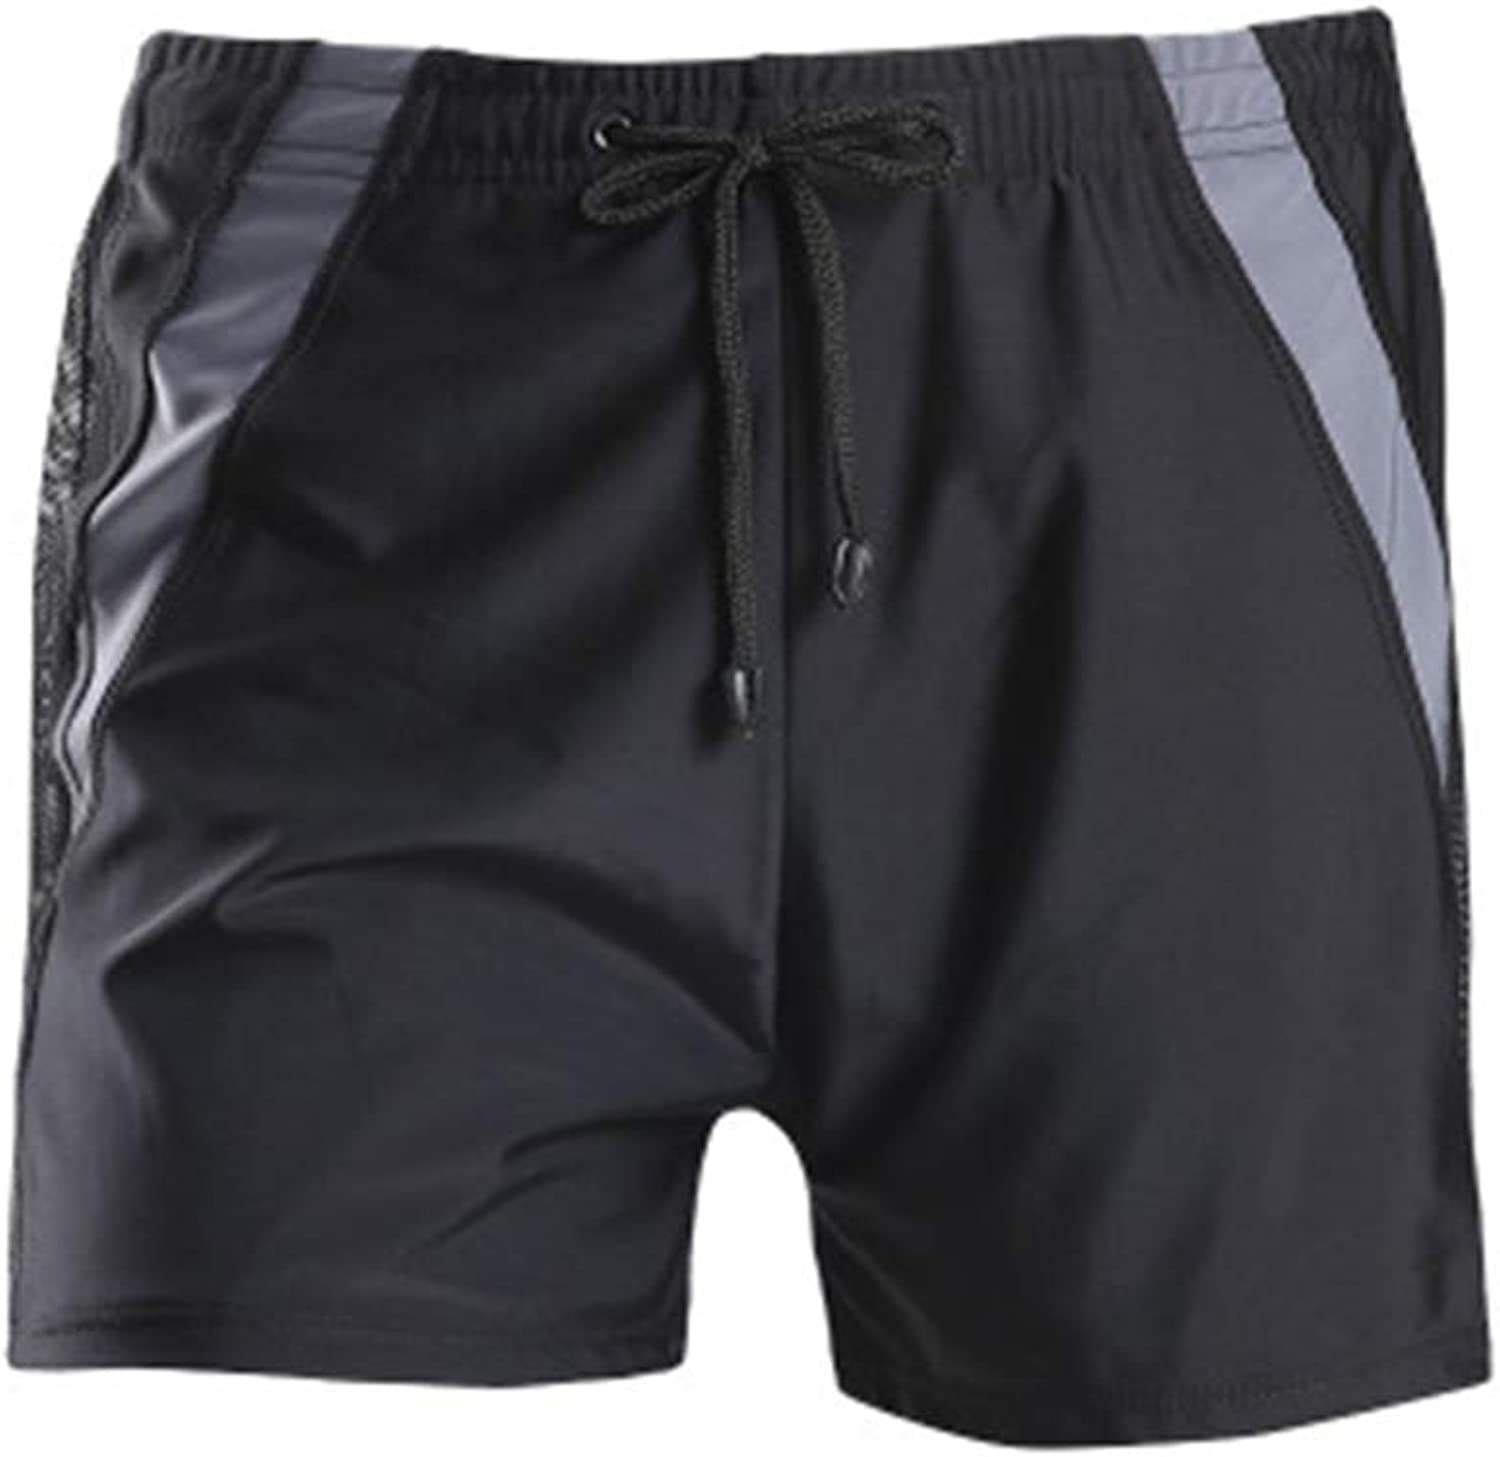 a845dfe435676 Men's Casual Swim Shorts Beach Shorts Men's Quick Quick Quick Dry Outdoor  Surfing 9bacfb